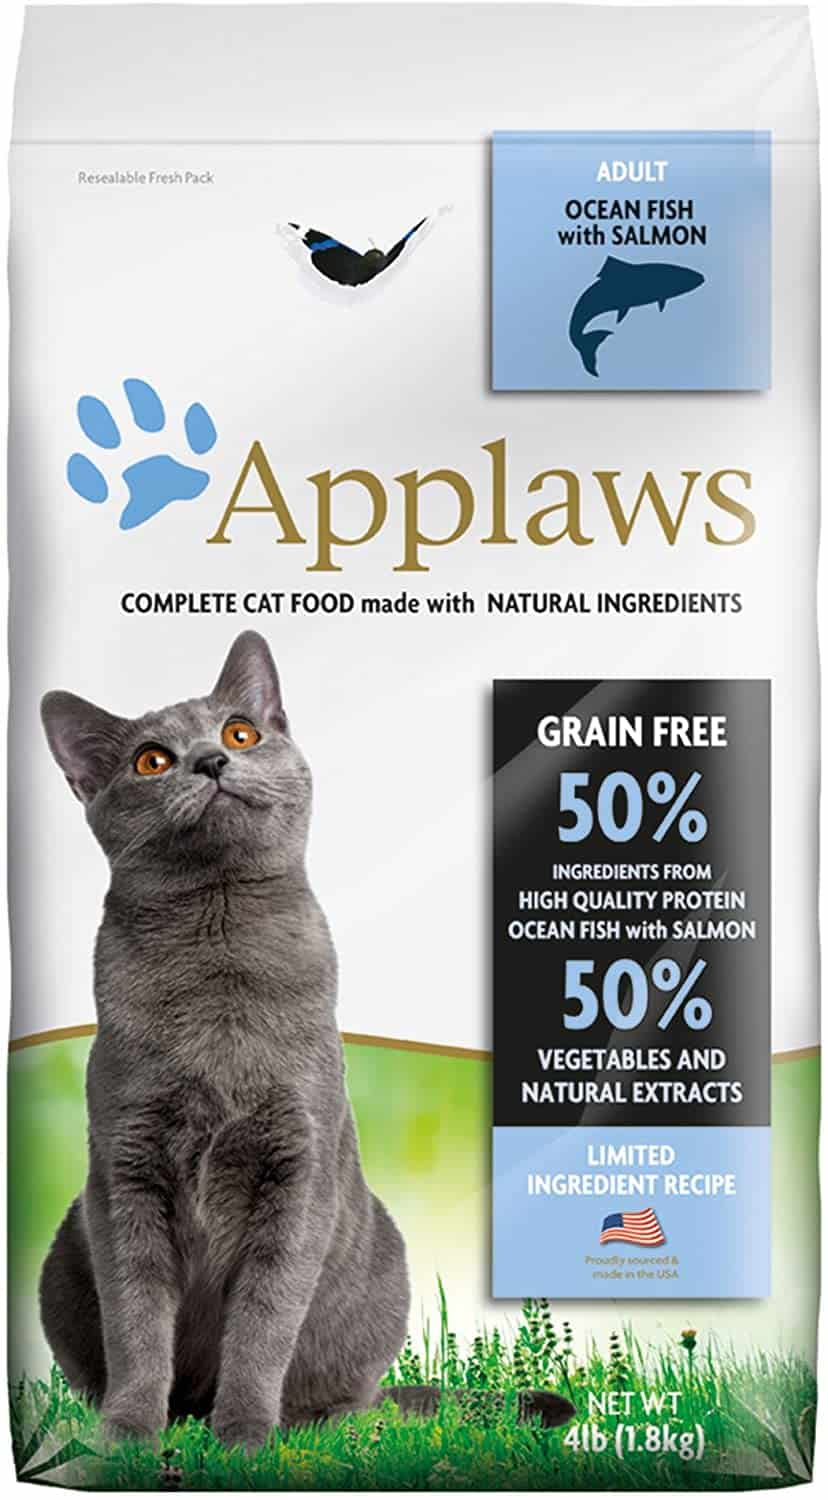 2020 Applaws Cat Food Review: Naturally Nutritious Cat Food 4